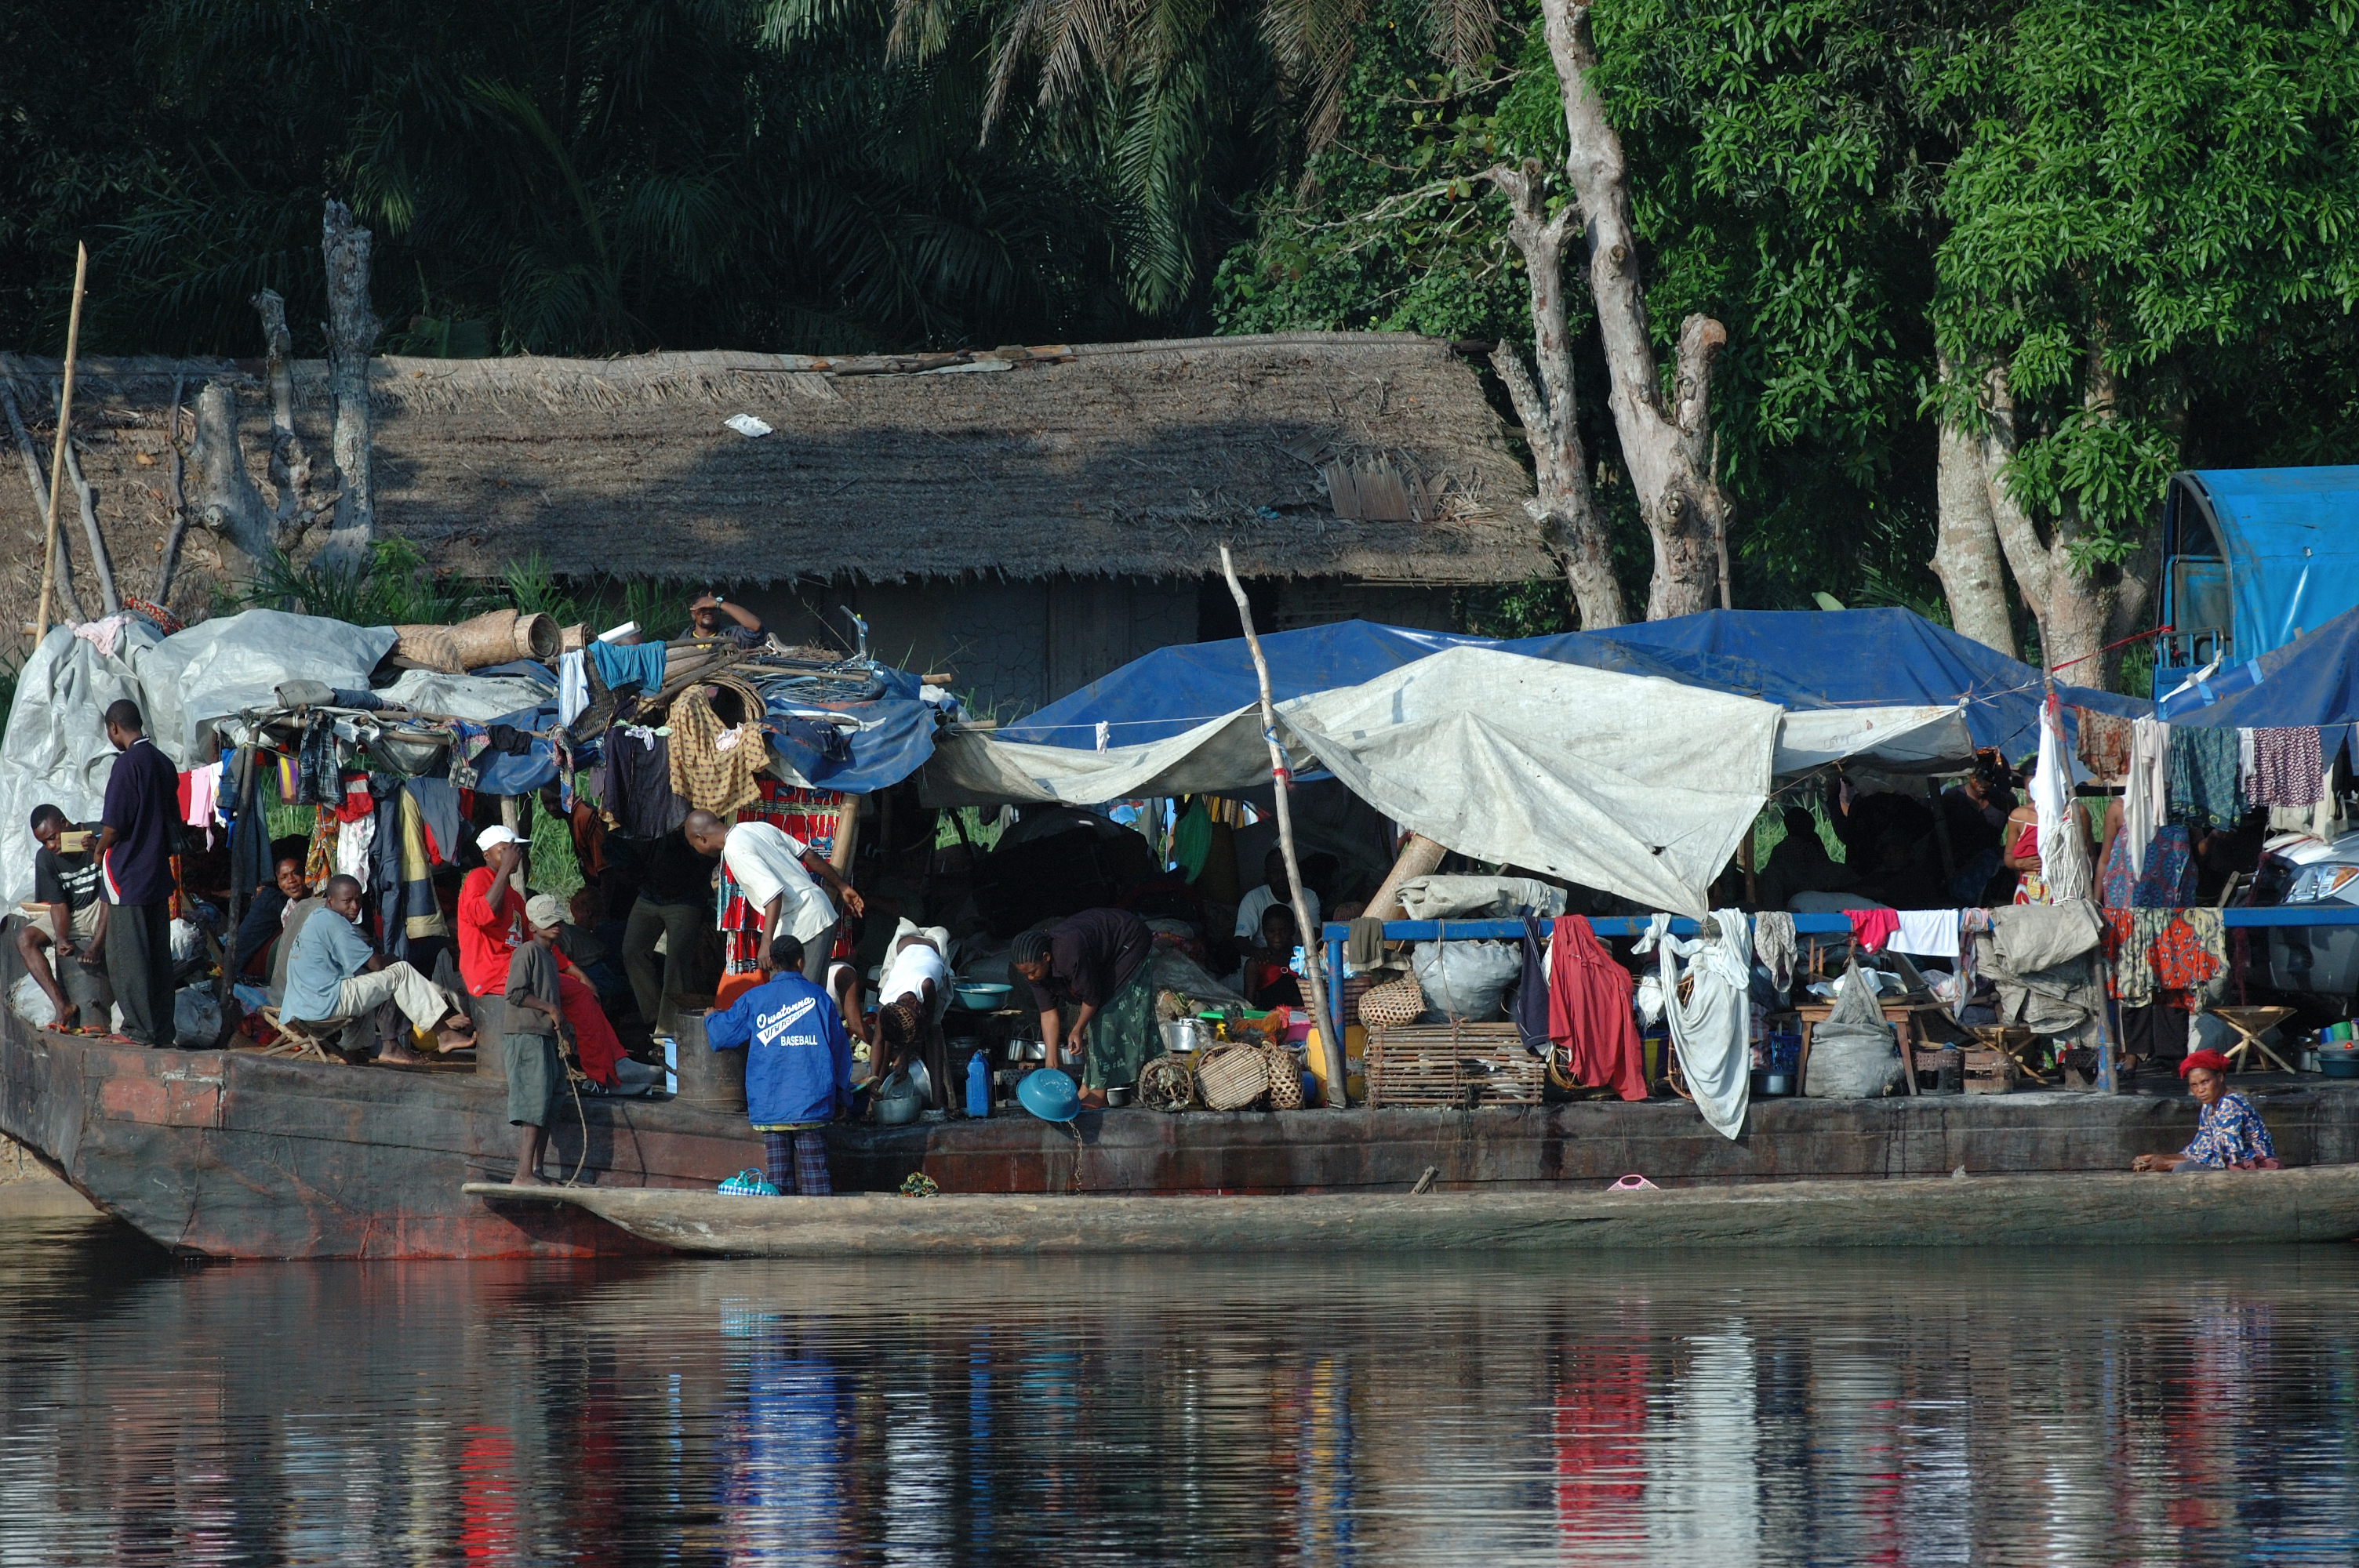 The Democratic Republic of the Congo is one of the poorest countries in the world.